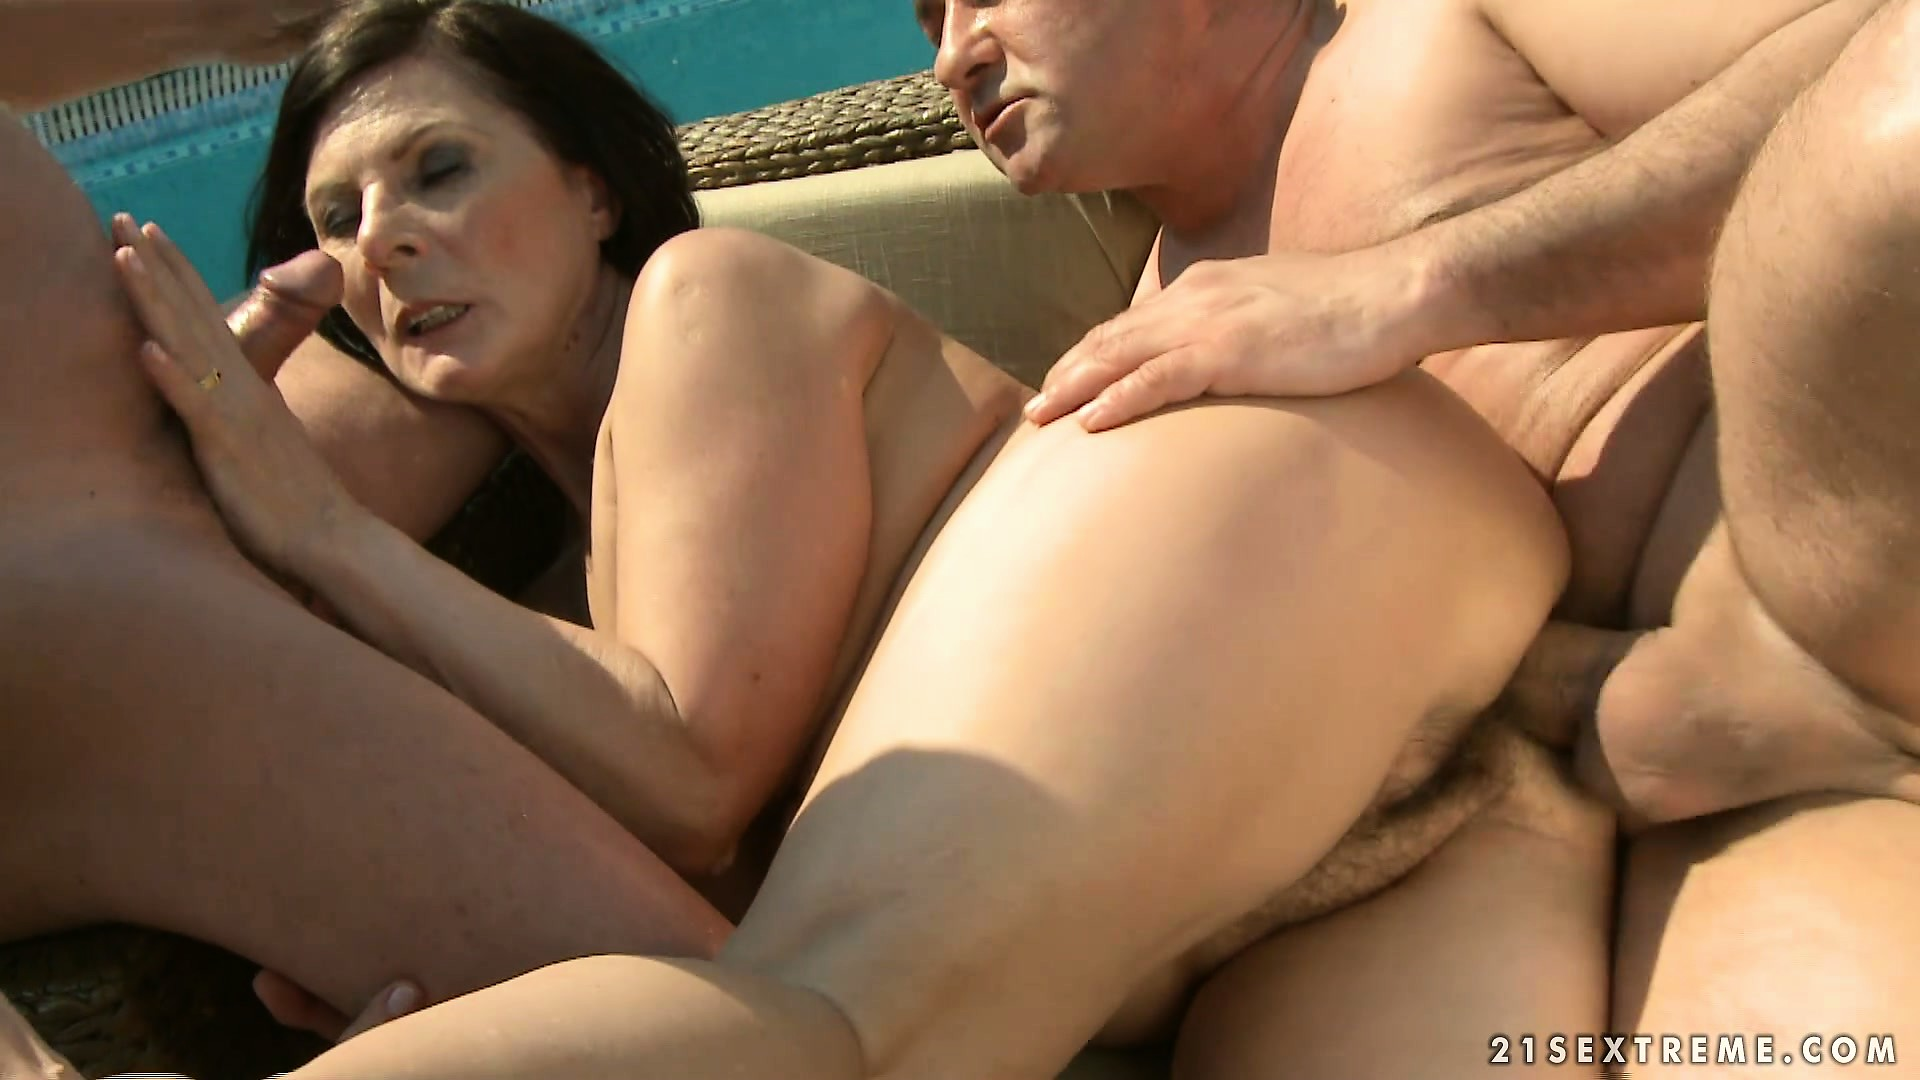 Sex Movie of She Blows Another Younger Dude In An Outside Three Way With Grandpa